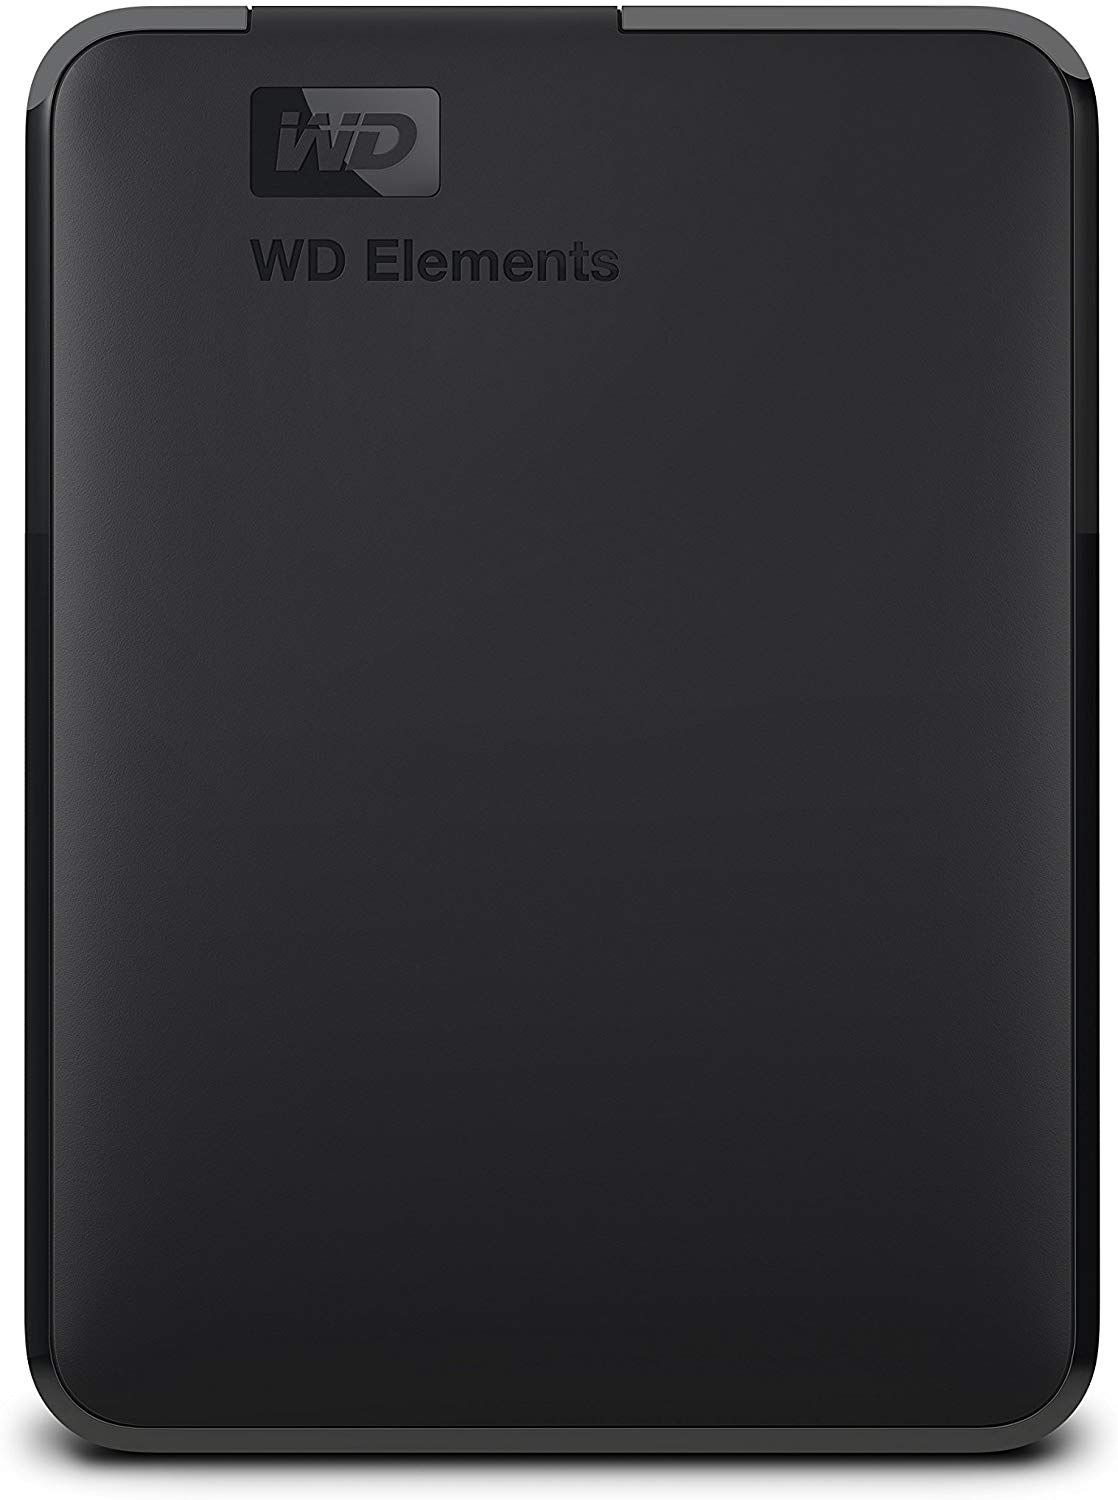 Western Digital Elements 1.5 TB Portable External Hard Drive